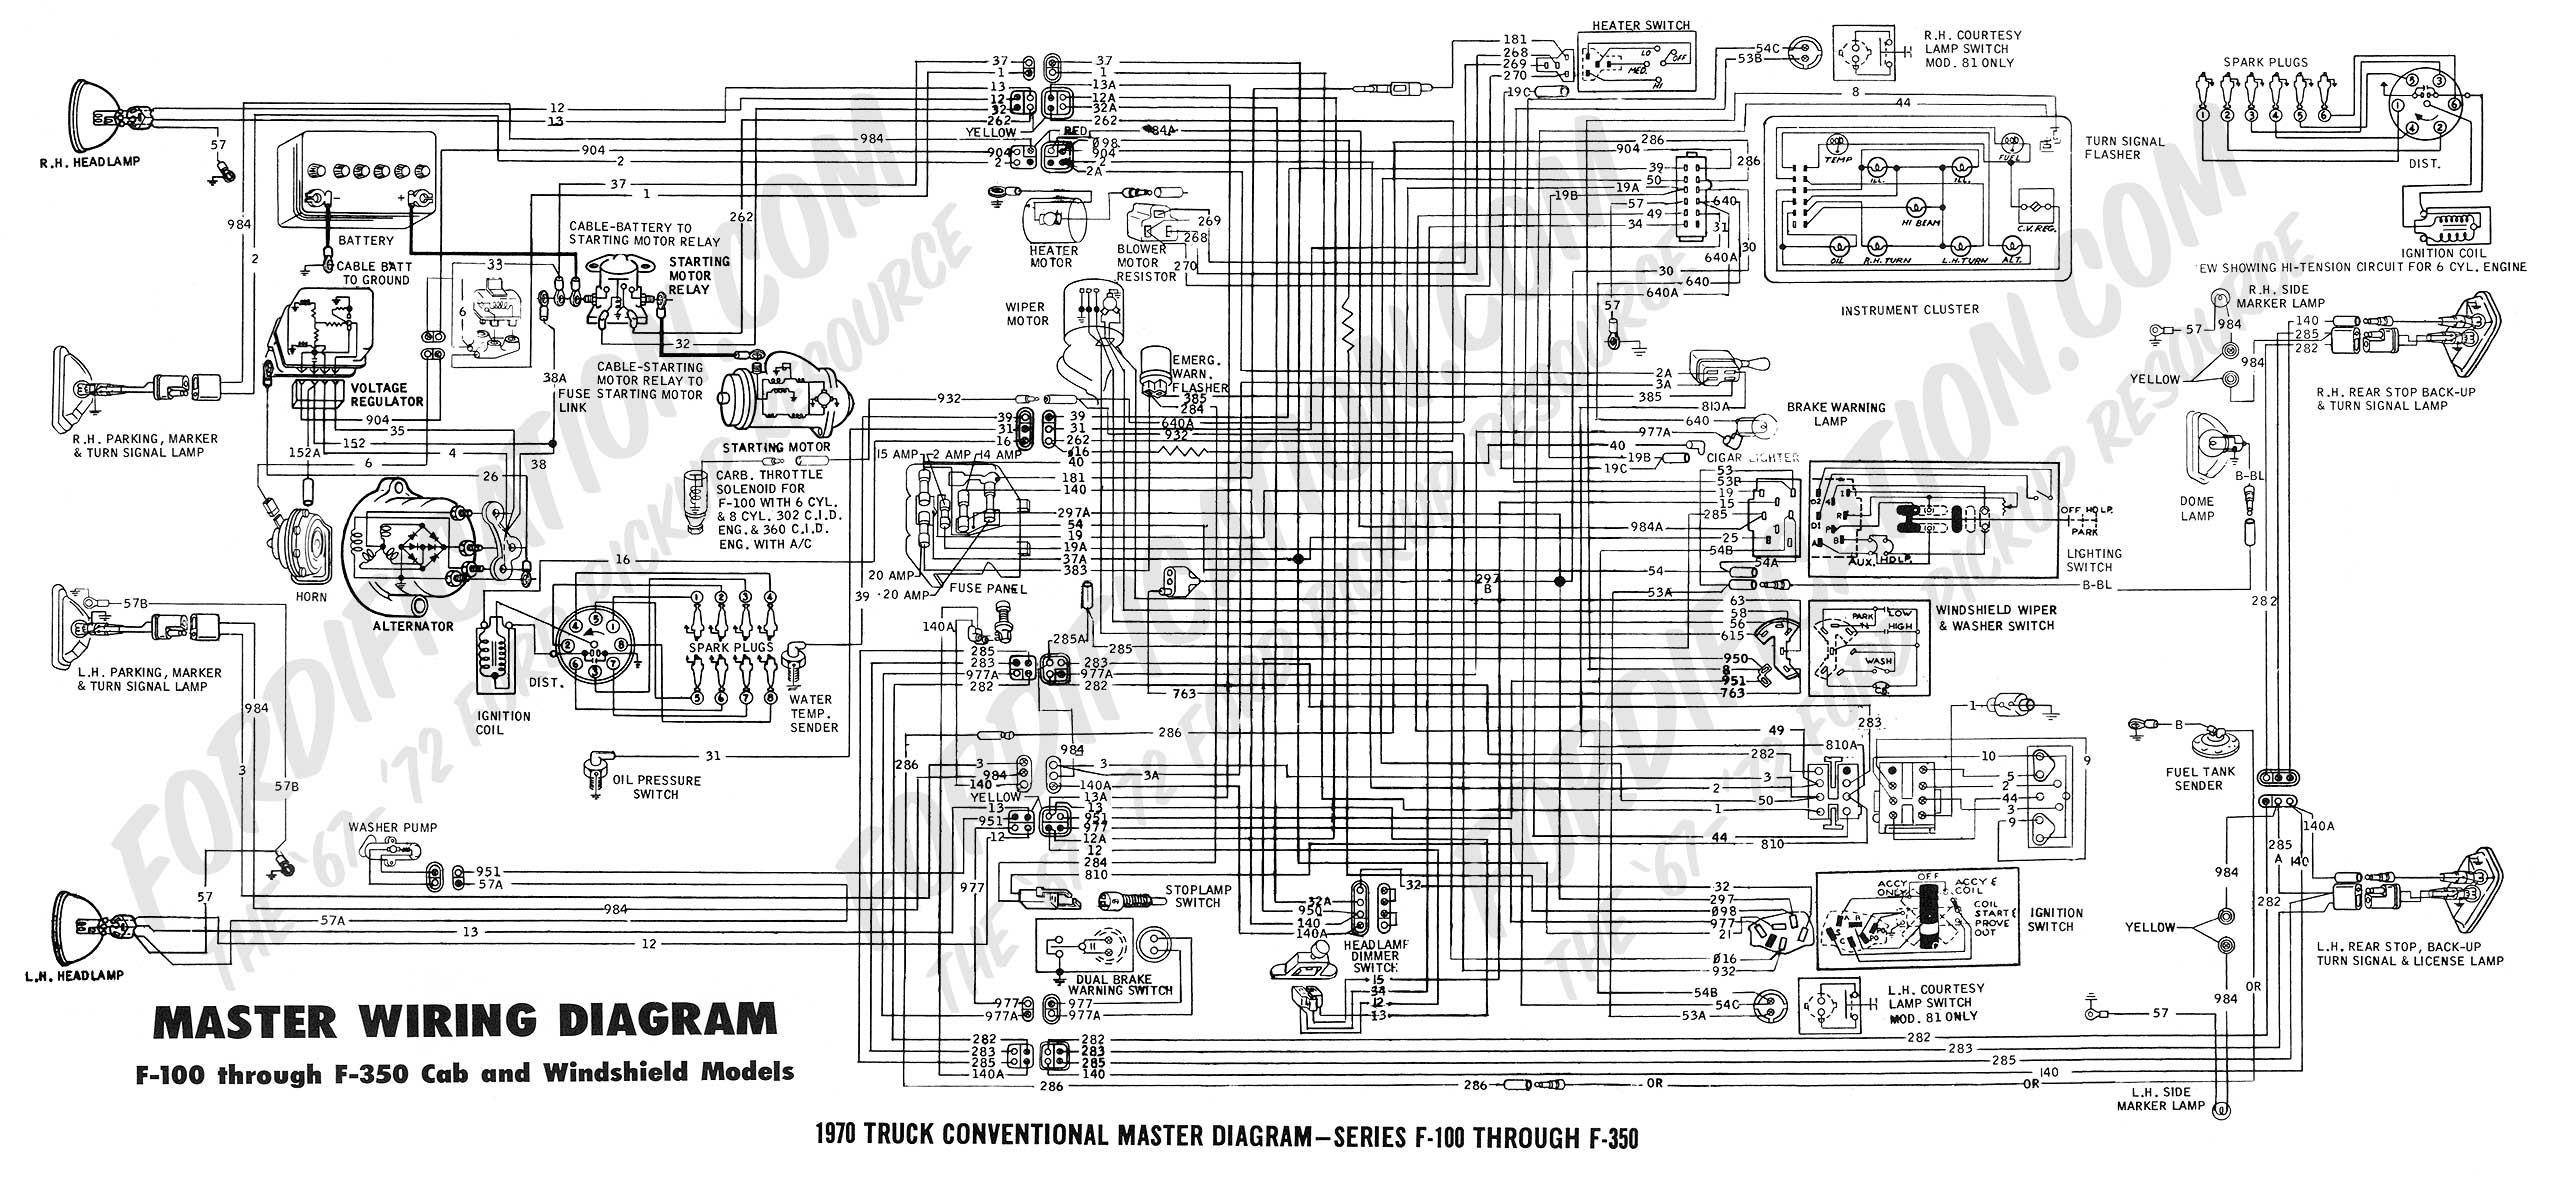 1966 ford pinto wiring diagram ford van wiring diagram ford wiring diagrams